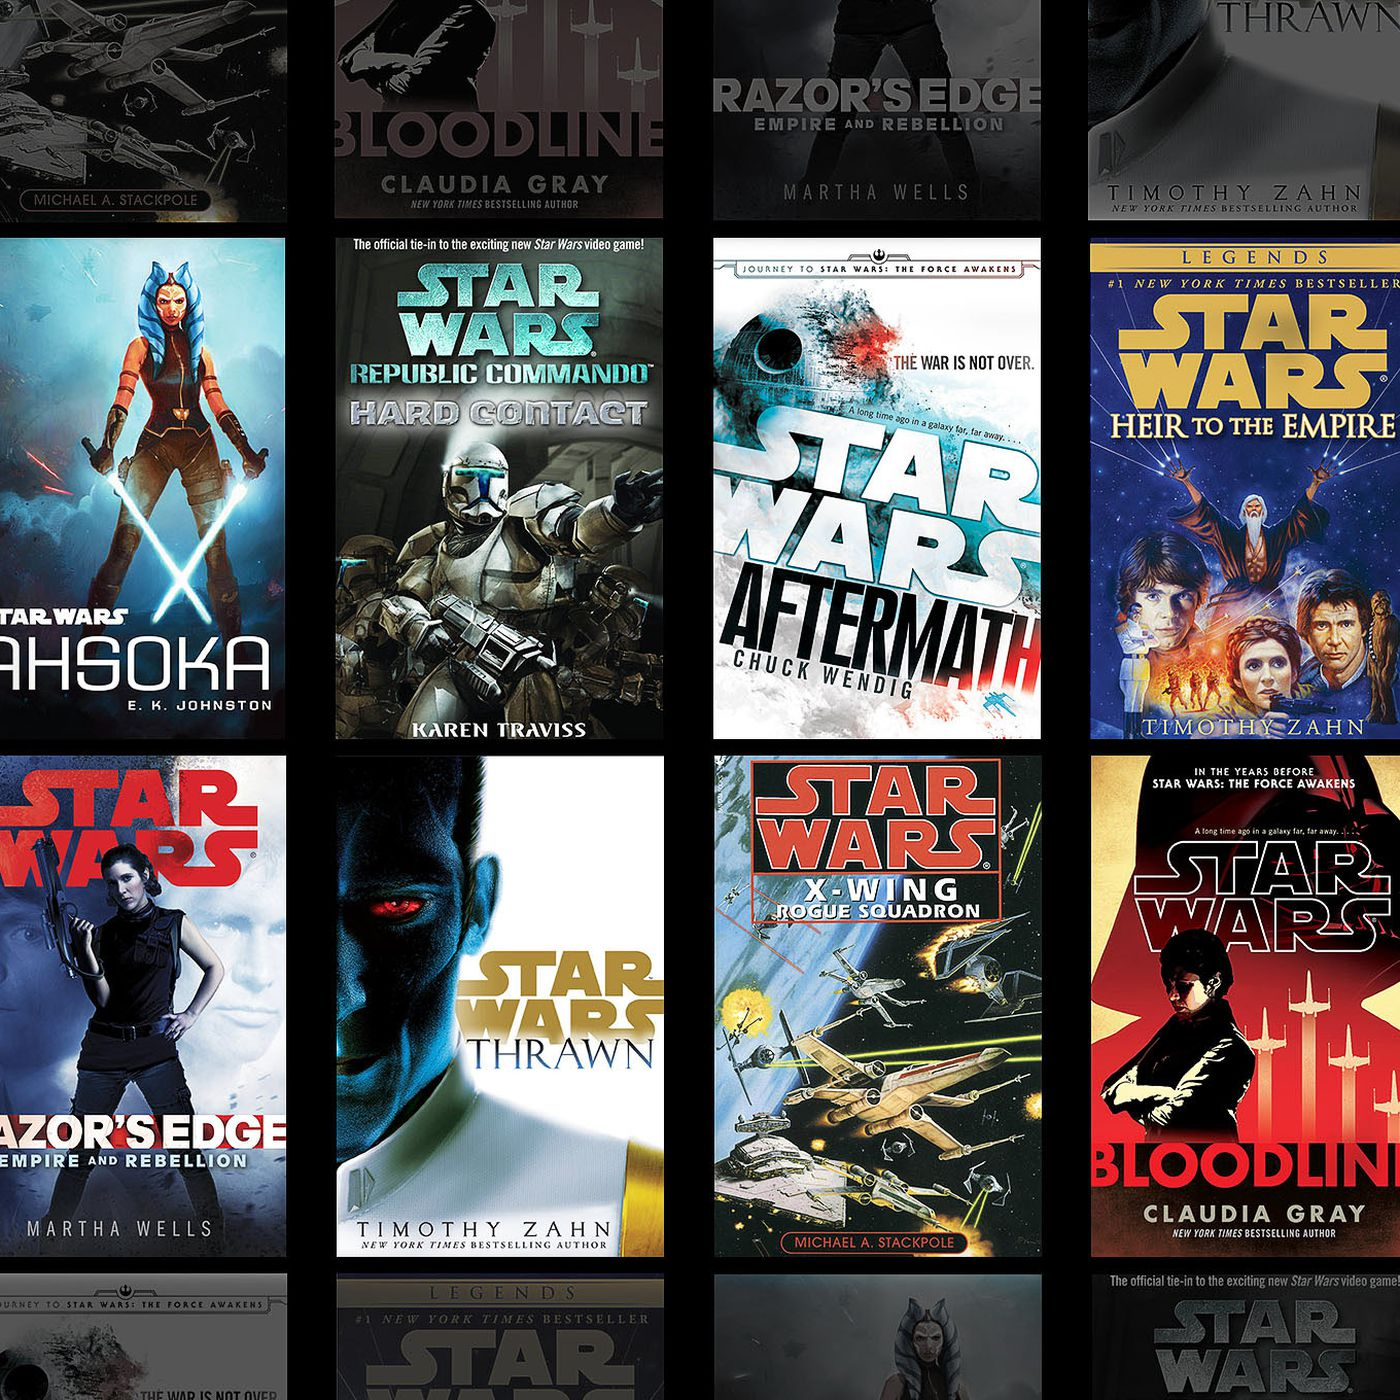 Star Wars reading list: where to start after you finish the